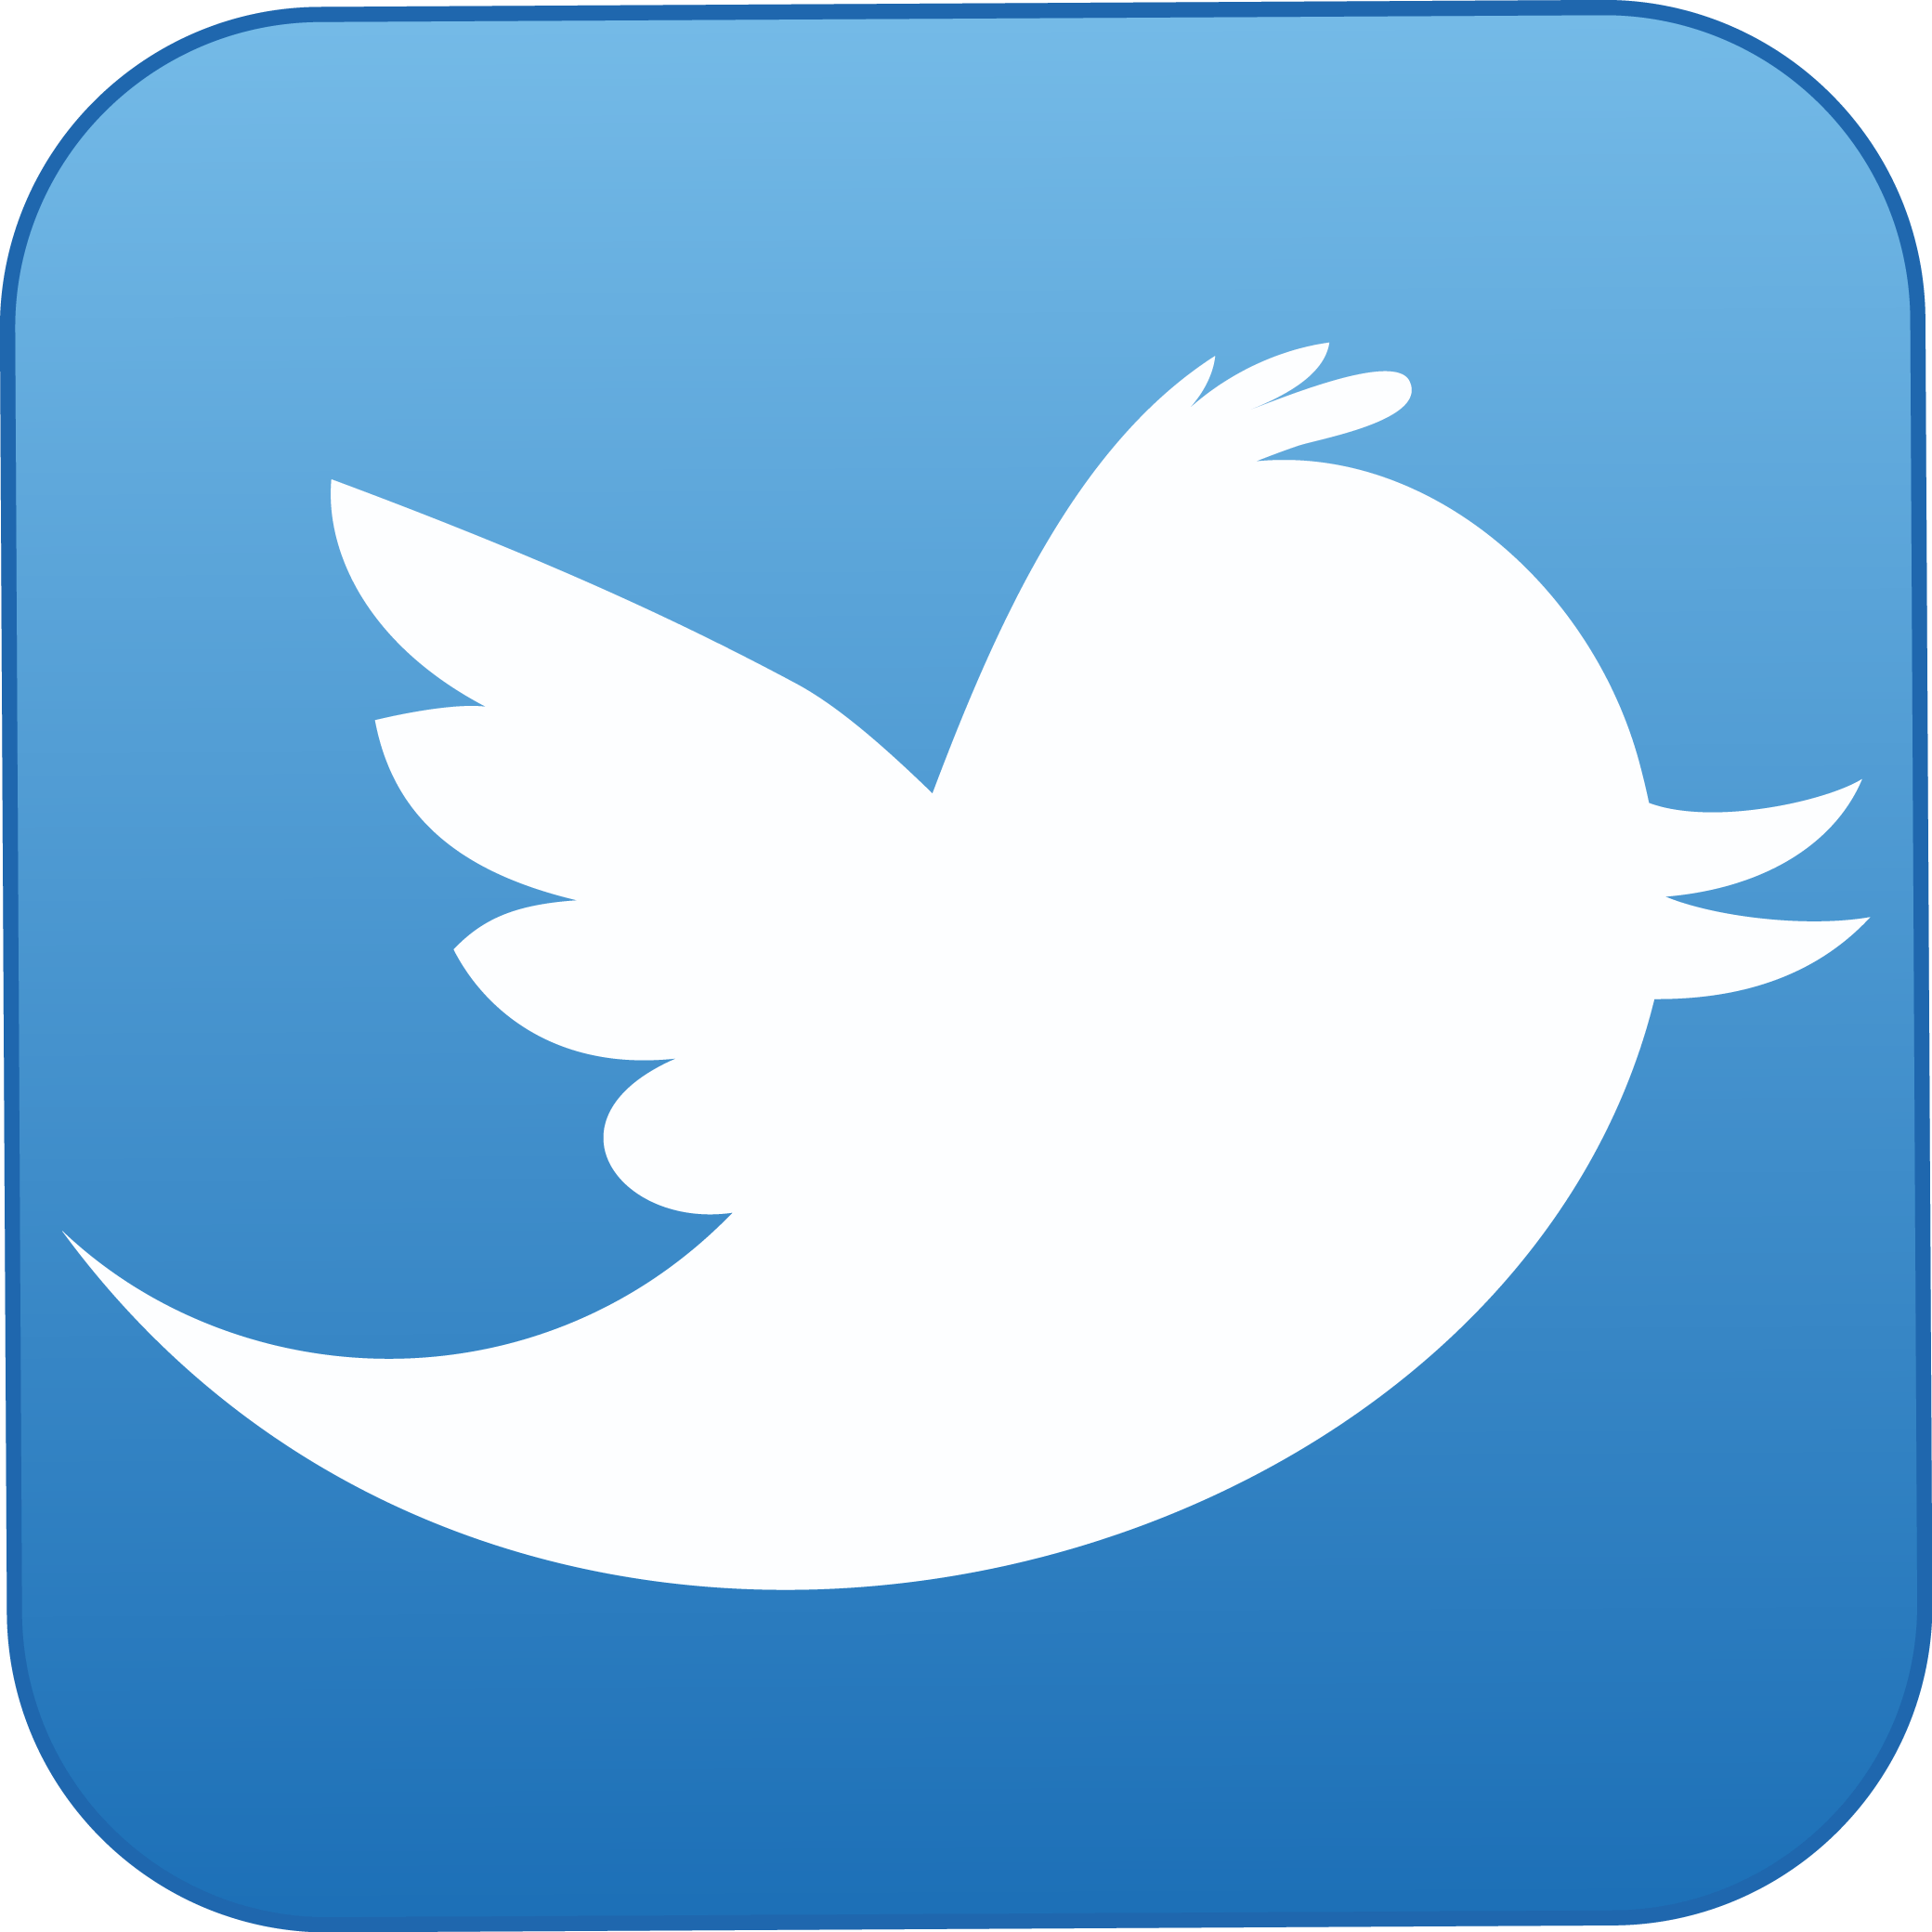 Download - Twitter PNG